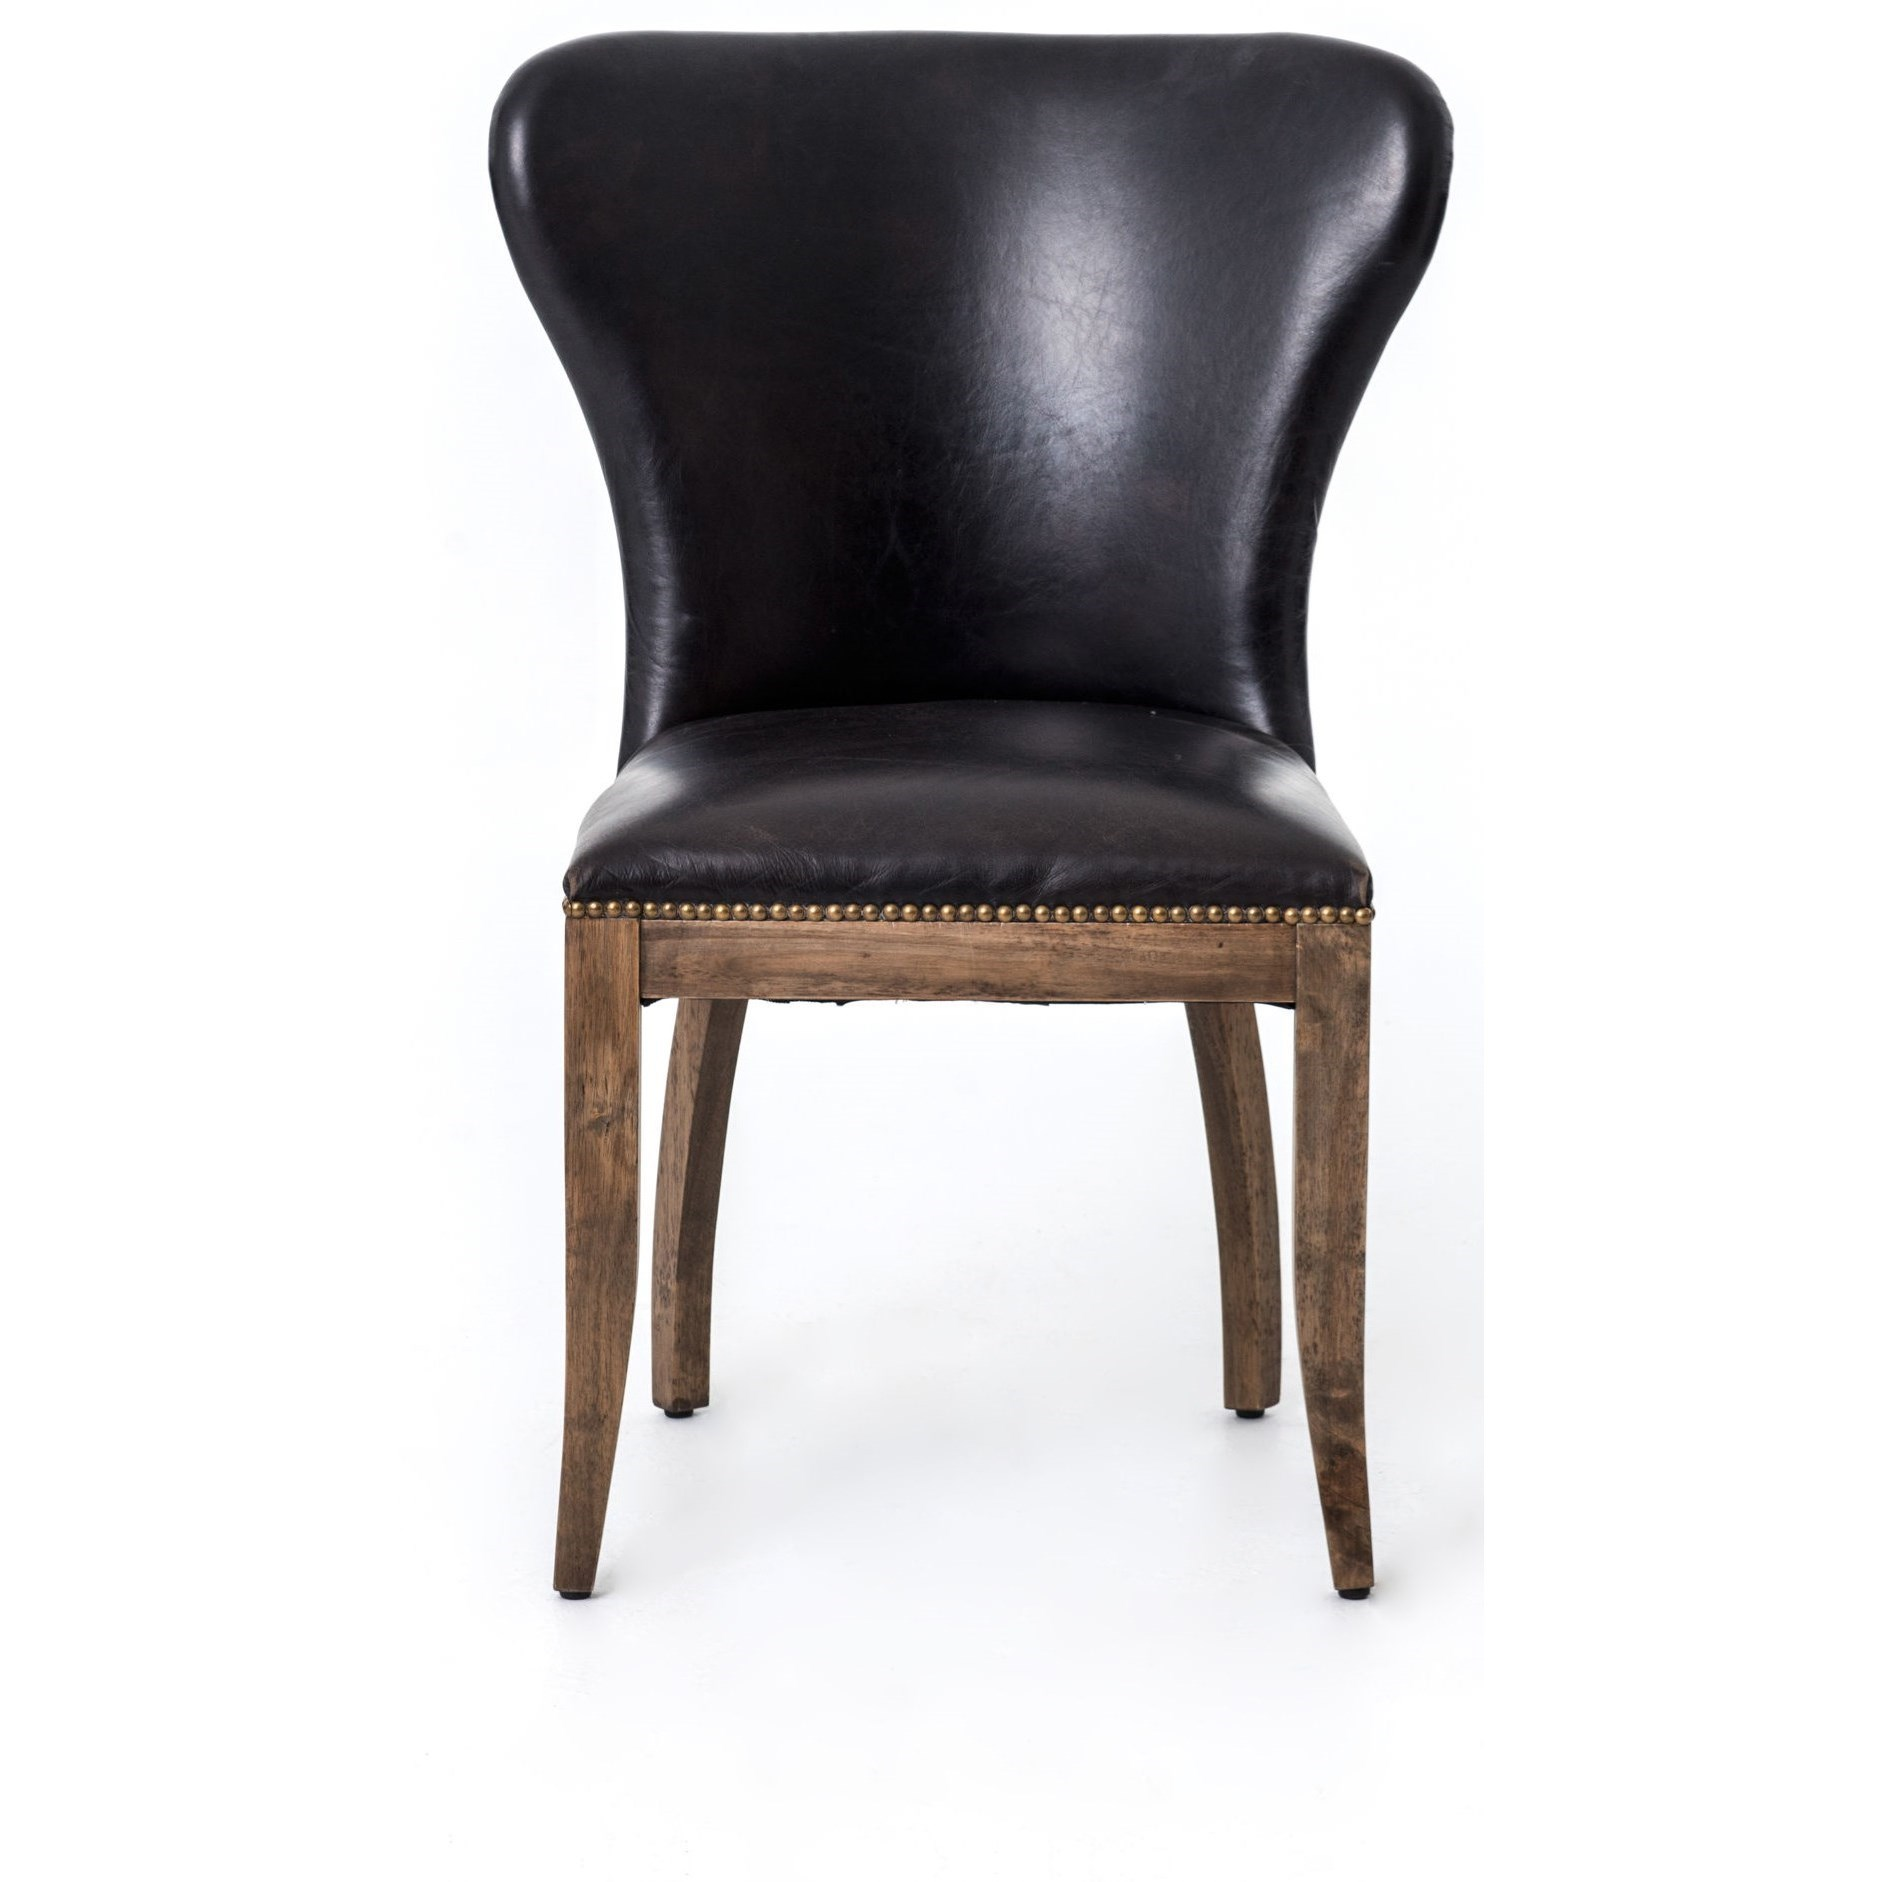 Carnegie Richmond Dining Chair by Interior Style at Sprintz Furniture